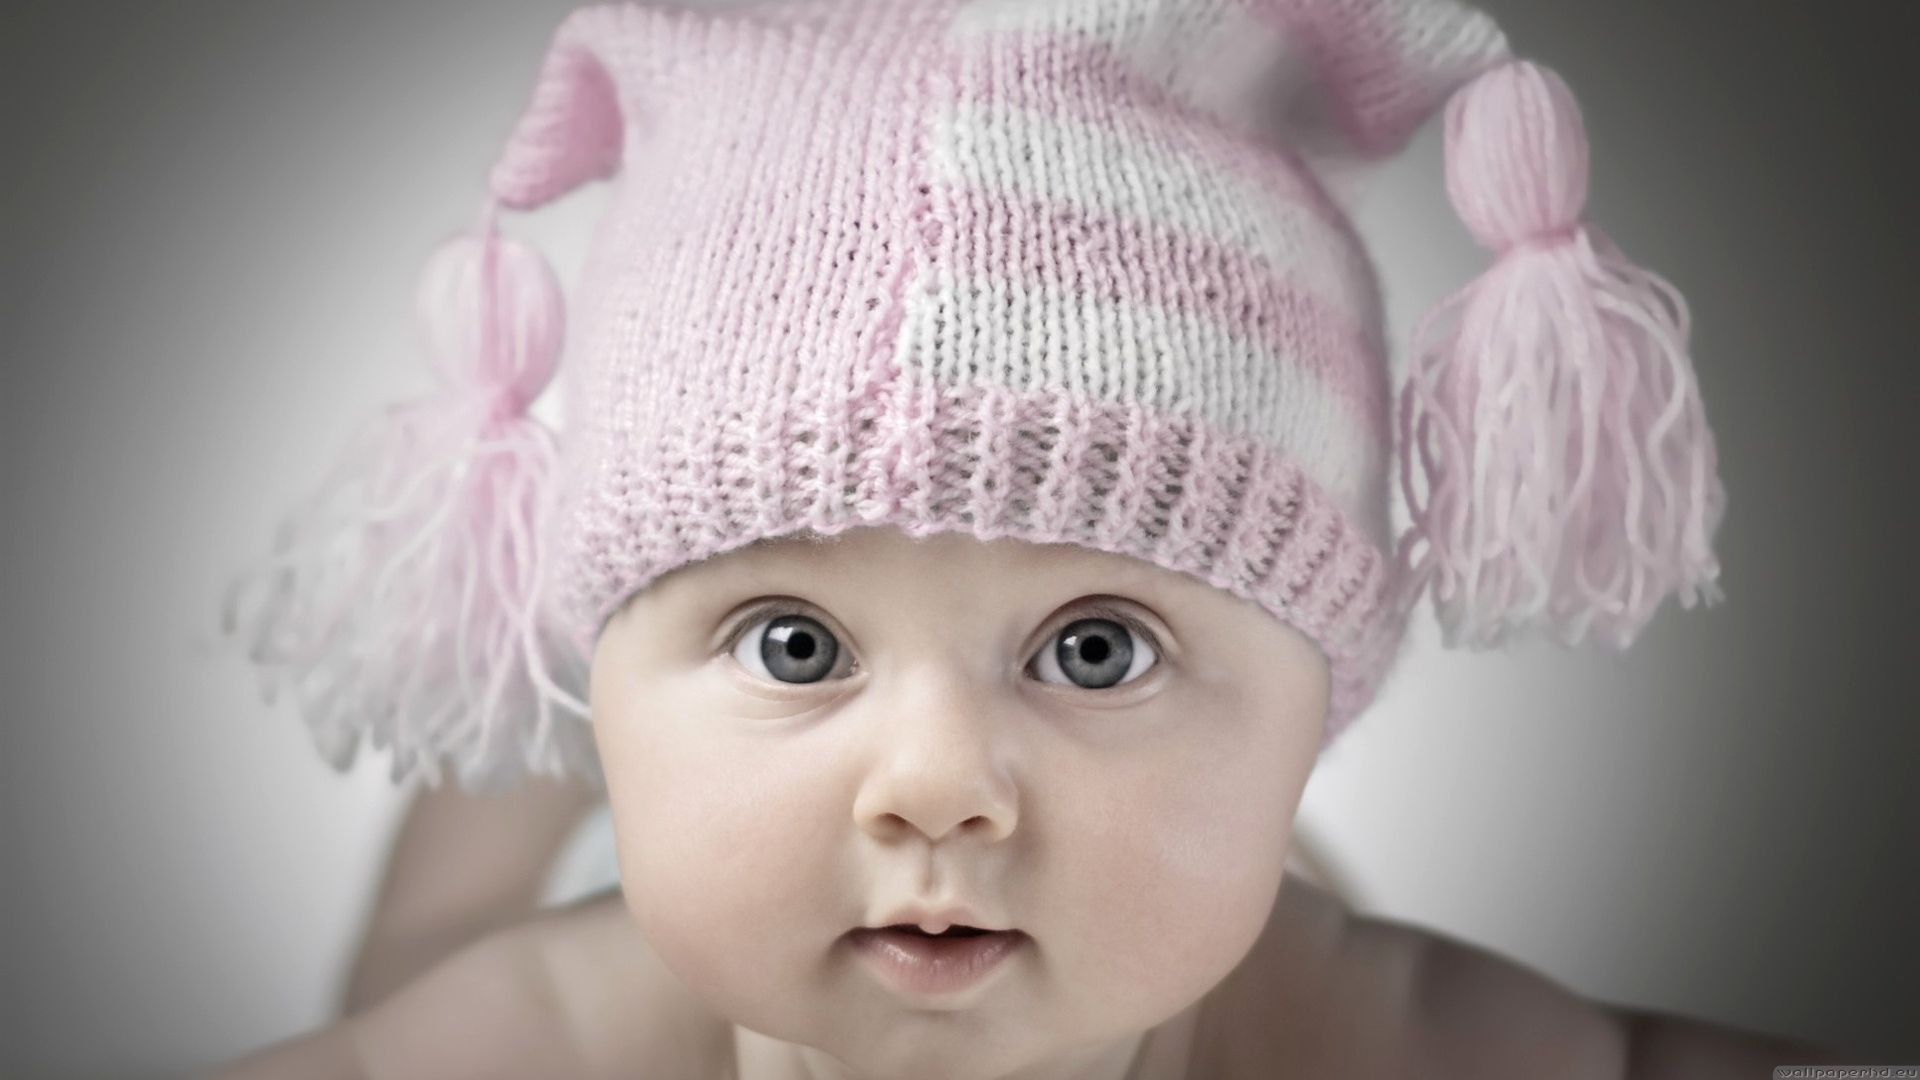 adorable baby photos in hd | cute wallpapers - download free cute